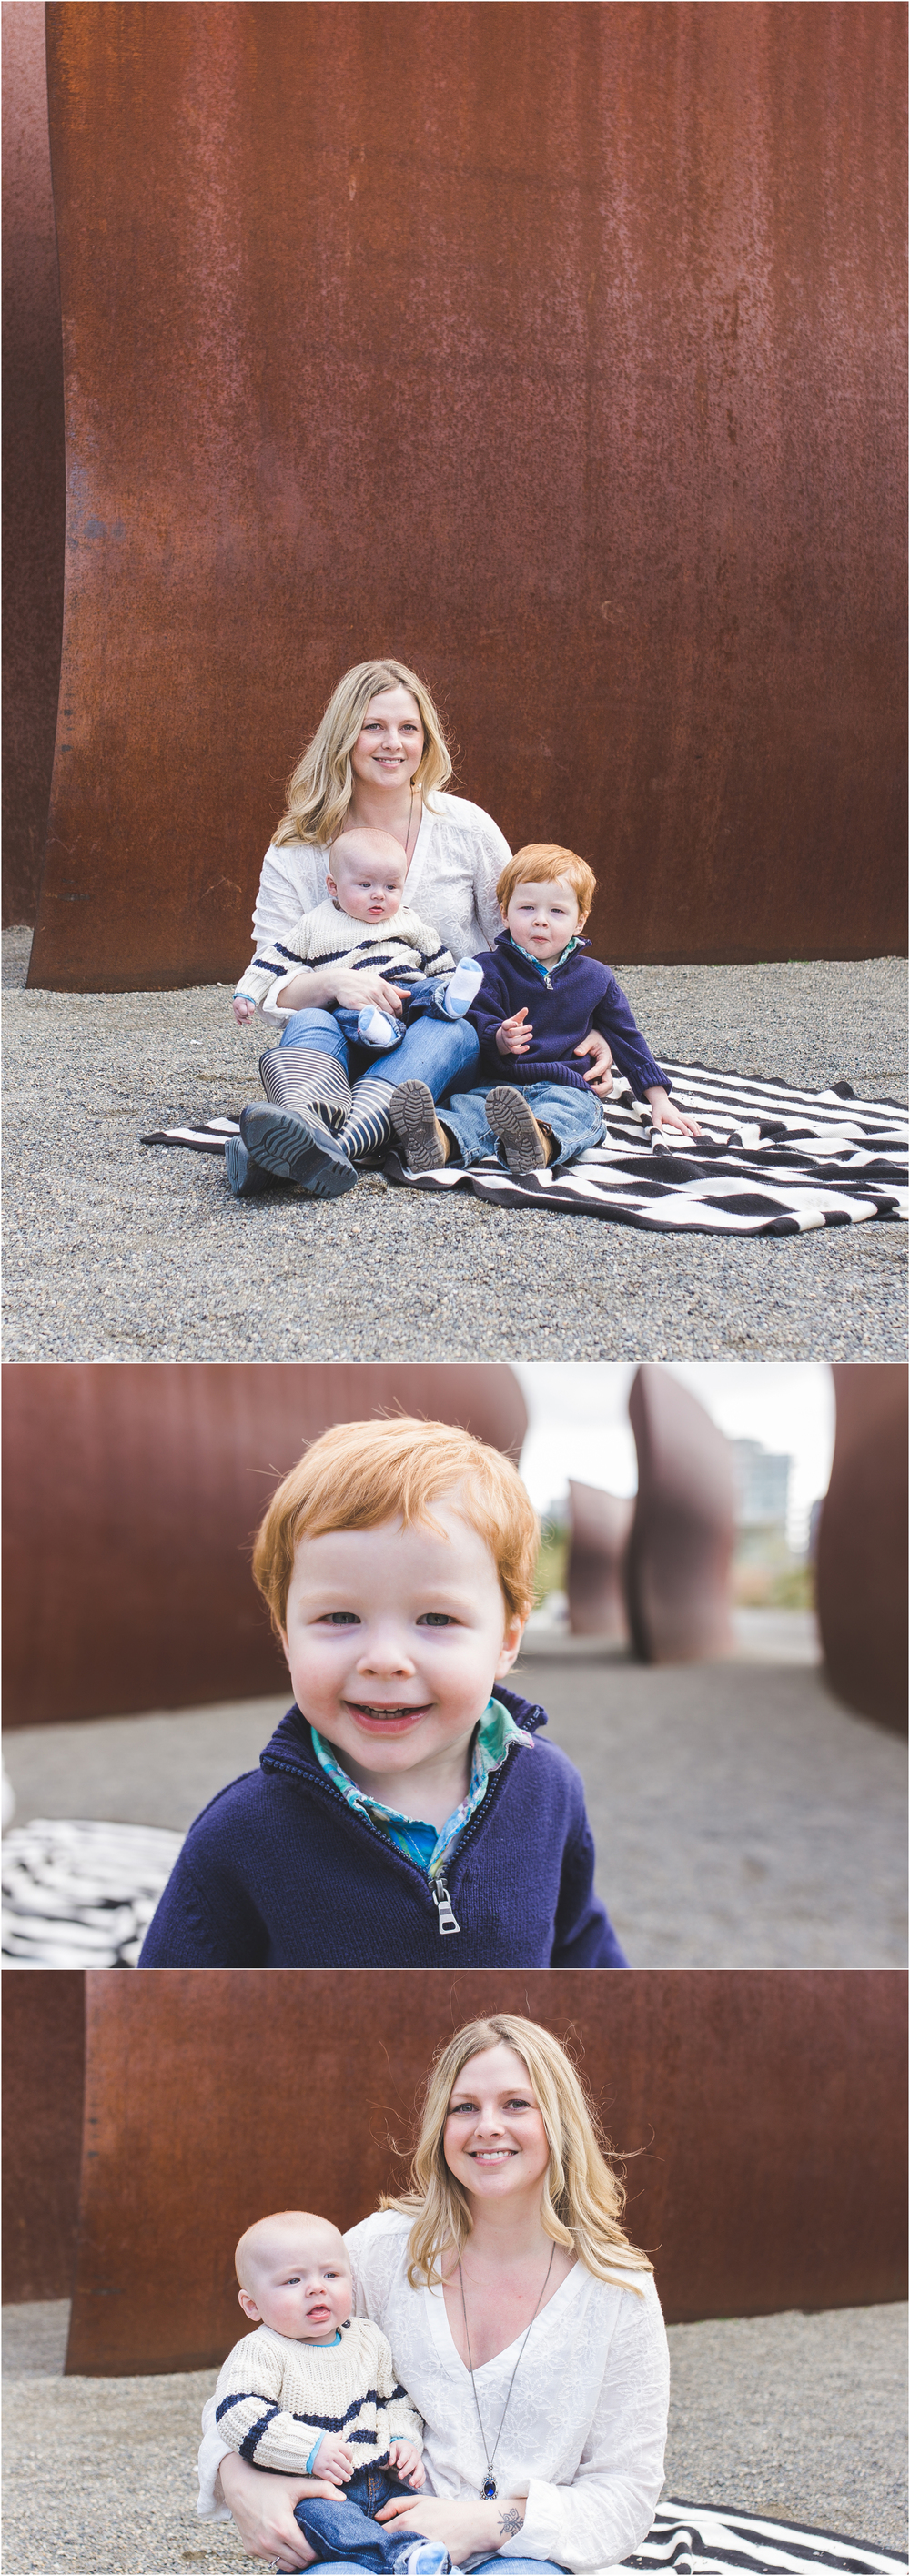 Ashley Vos Photography Seattle Lifestyle Family Photography_0045.jpg